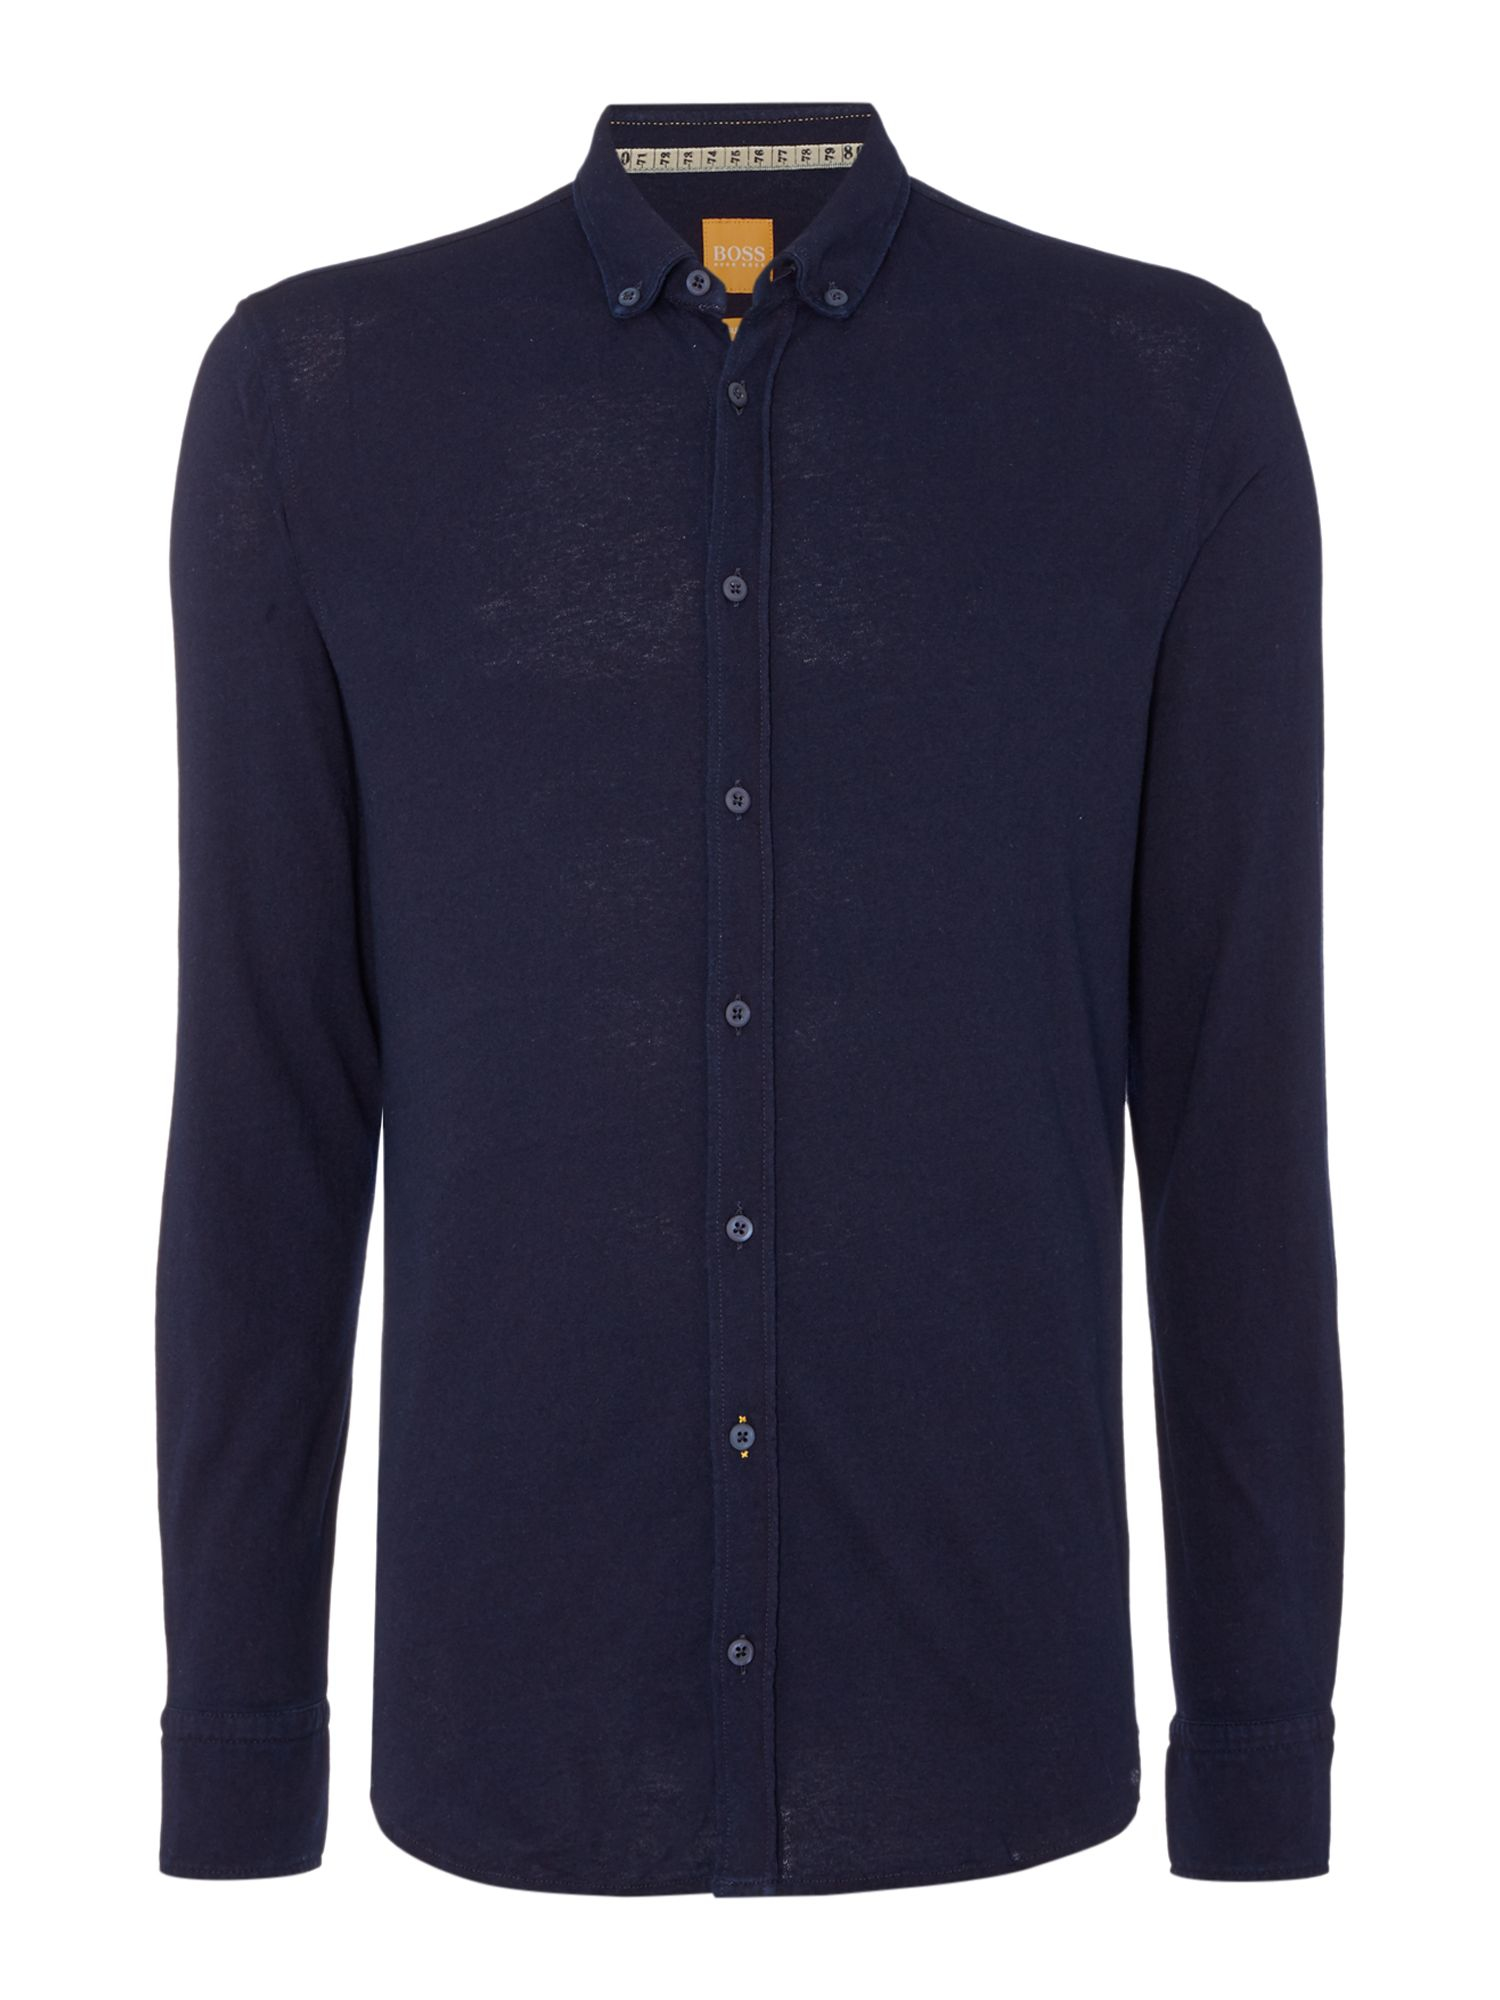 Boss edipoe slim fit button down jersey shirt in blue for for Navy slim fit shirt